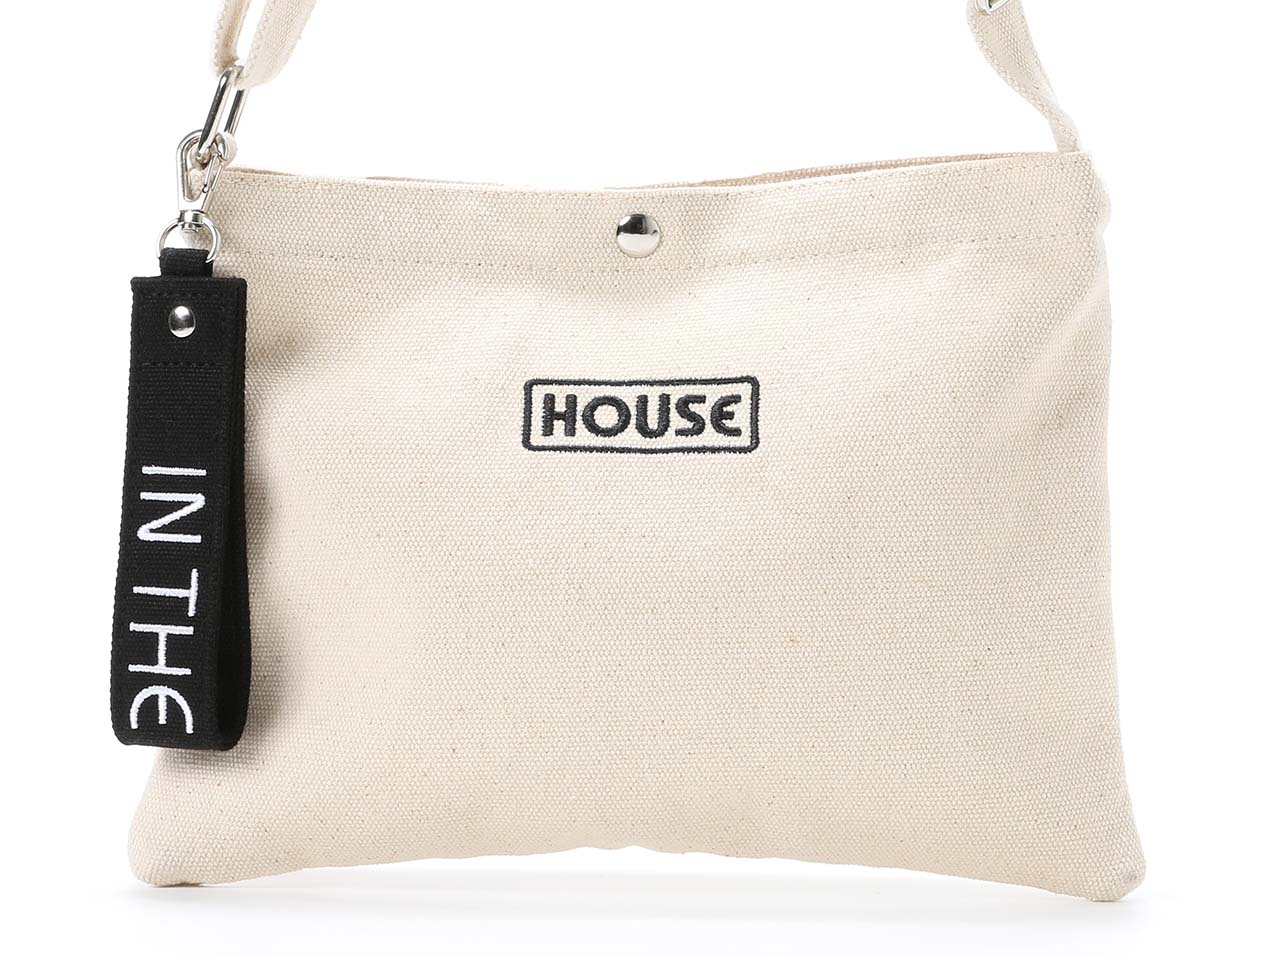 【60%OFF】IN THE HOUSE CANVAS SHOULDER BAG SMALL 2 - ith-0062